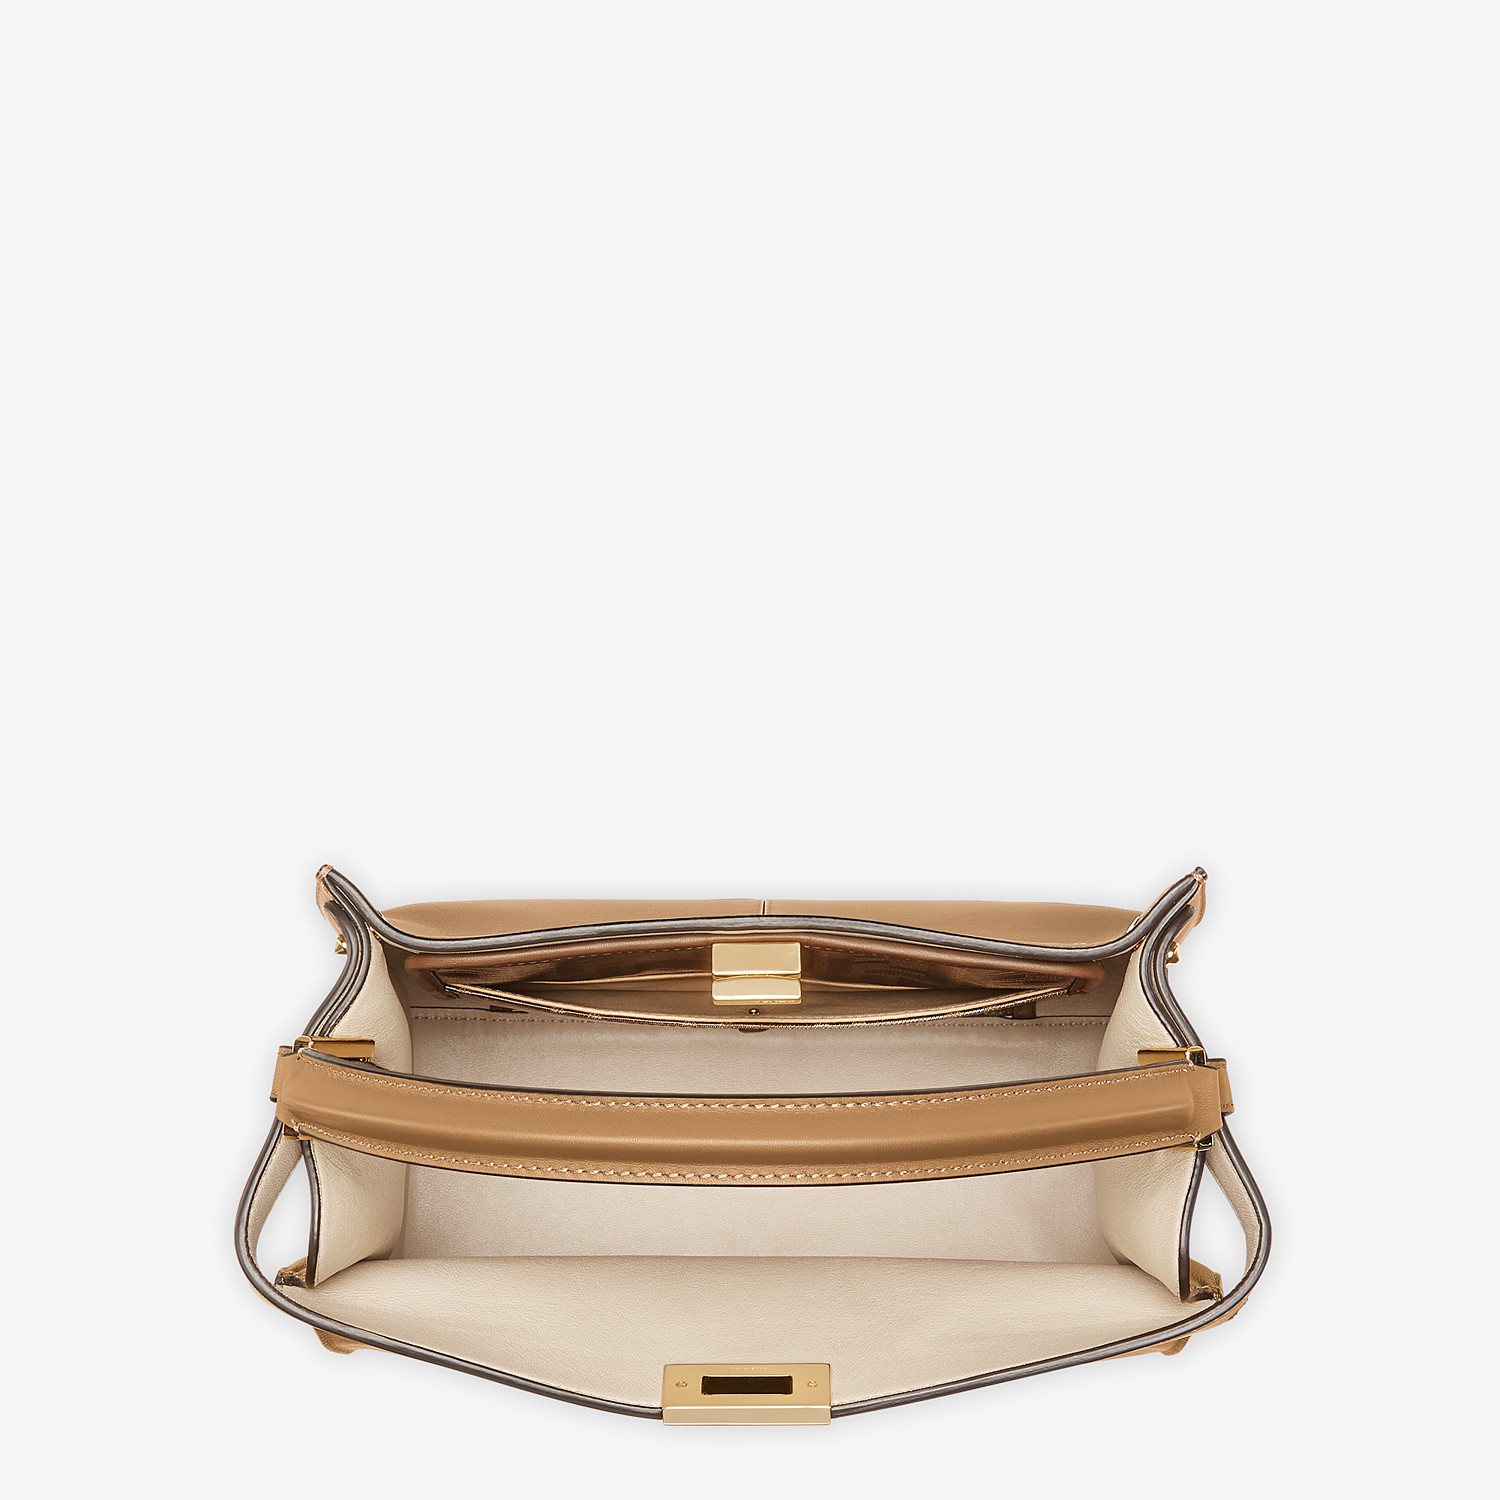 FENDI MEDIUM PEEKABOO X-LITE - Beige leather bag - view 6 detail